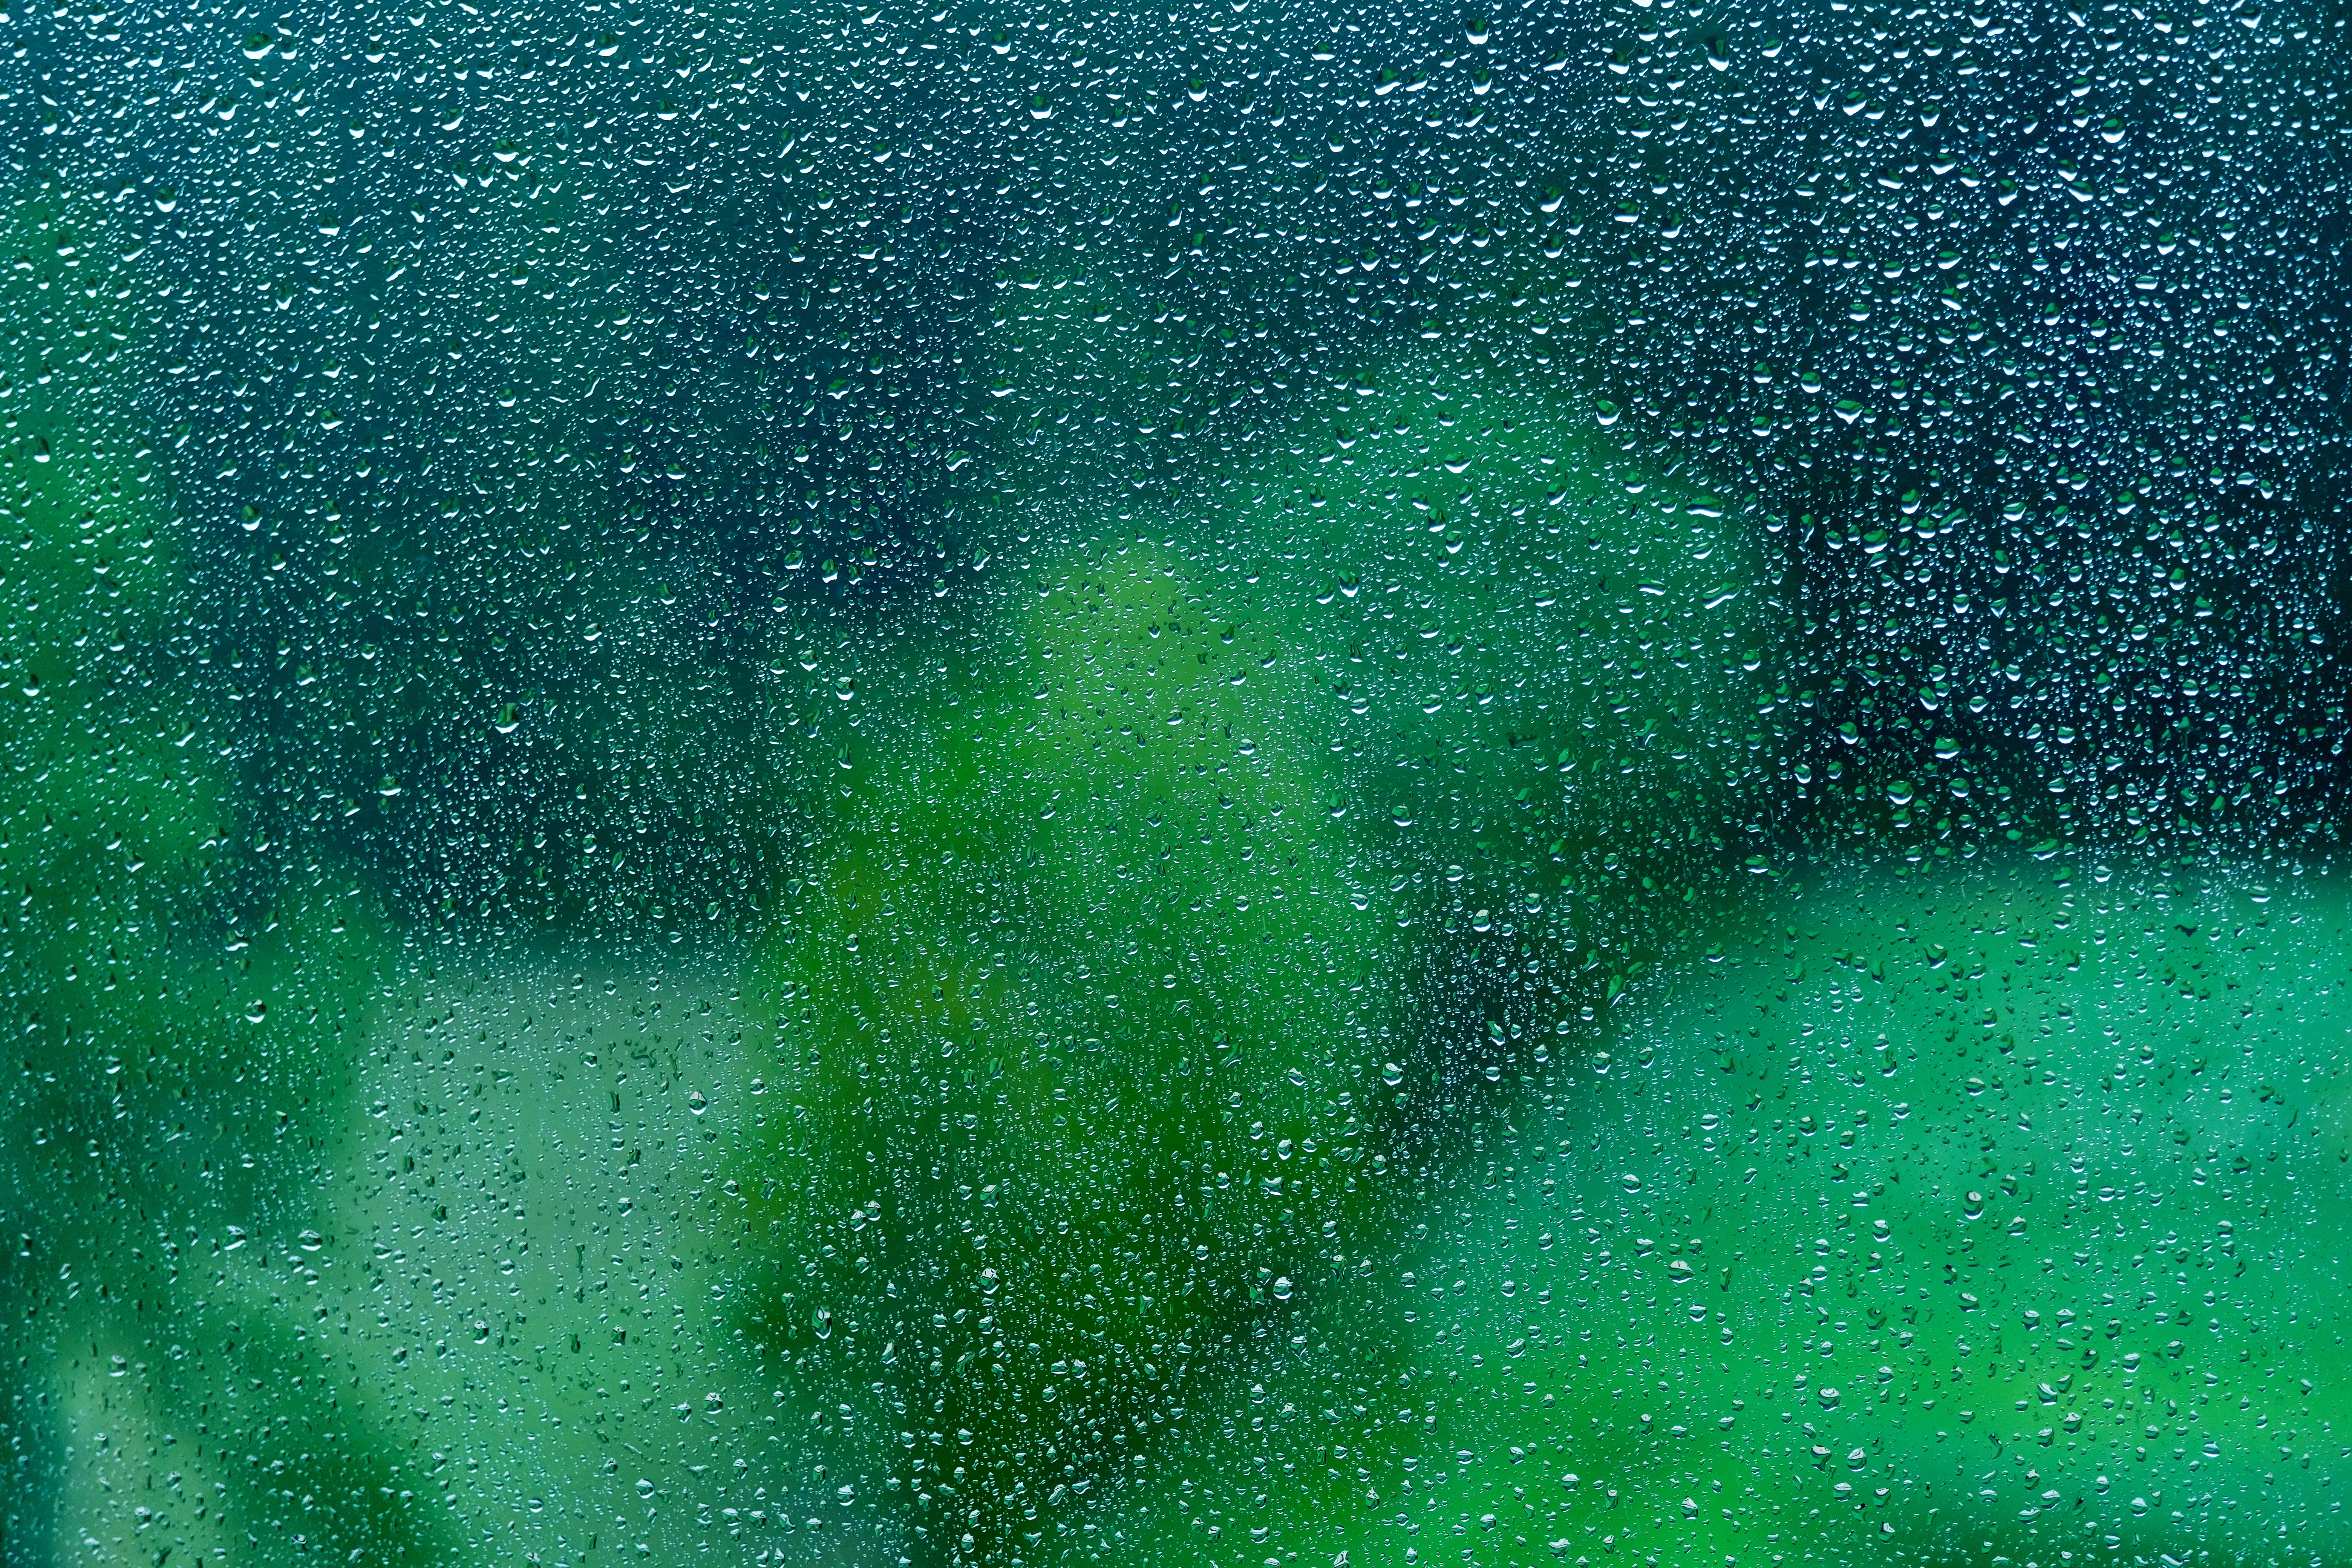 56673 free download Green wallpapers for phone, Macro, Drops, Glass, Surface, Wet, Rain, Transparent Green images and screensavers for mobile